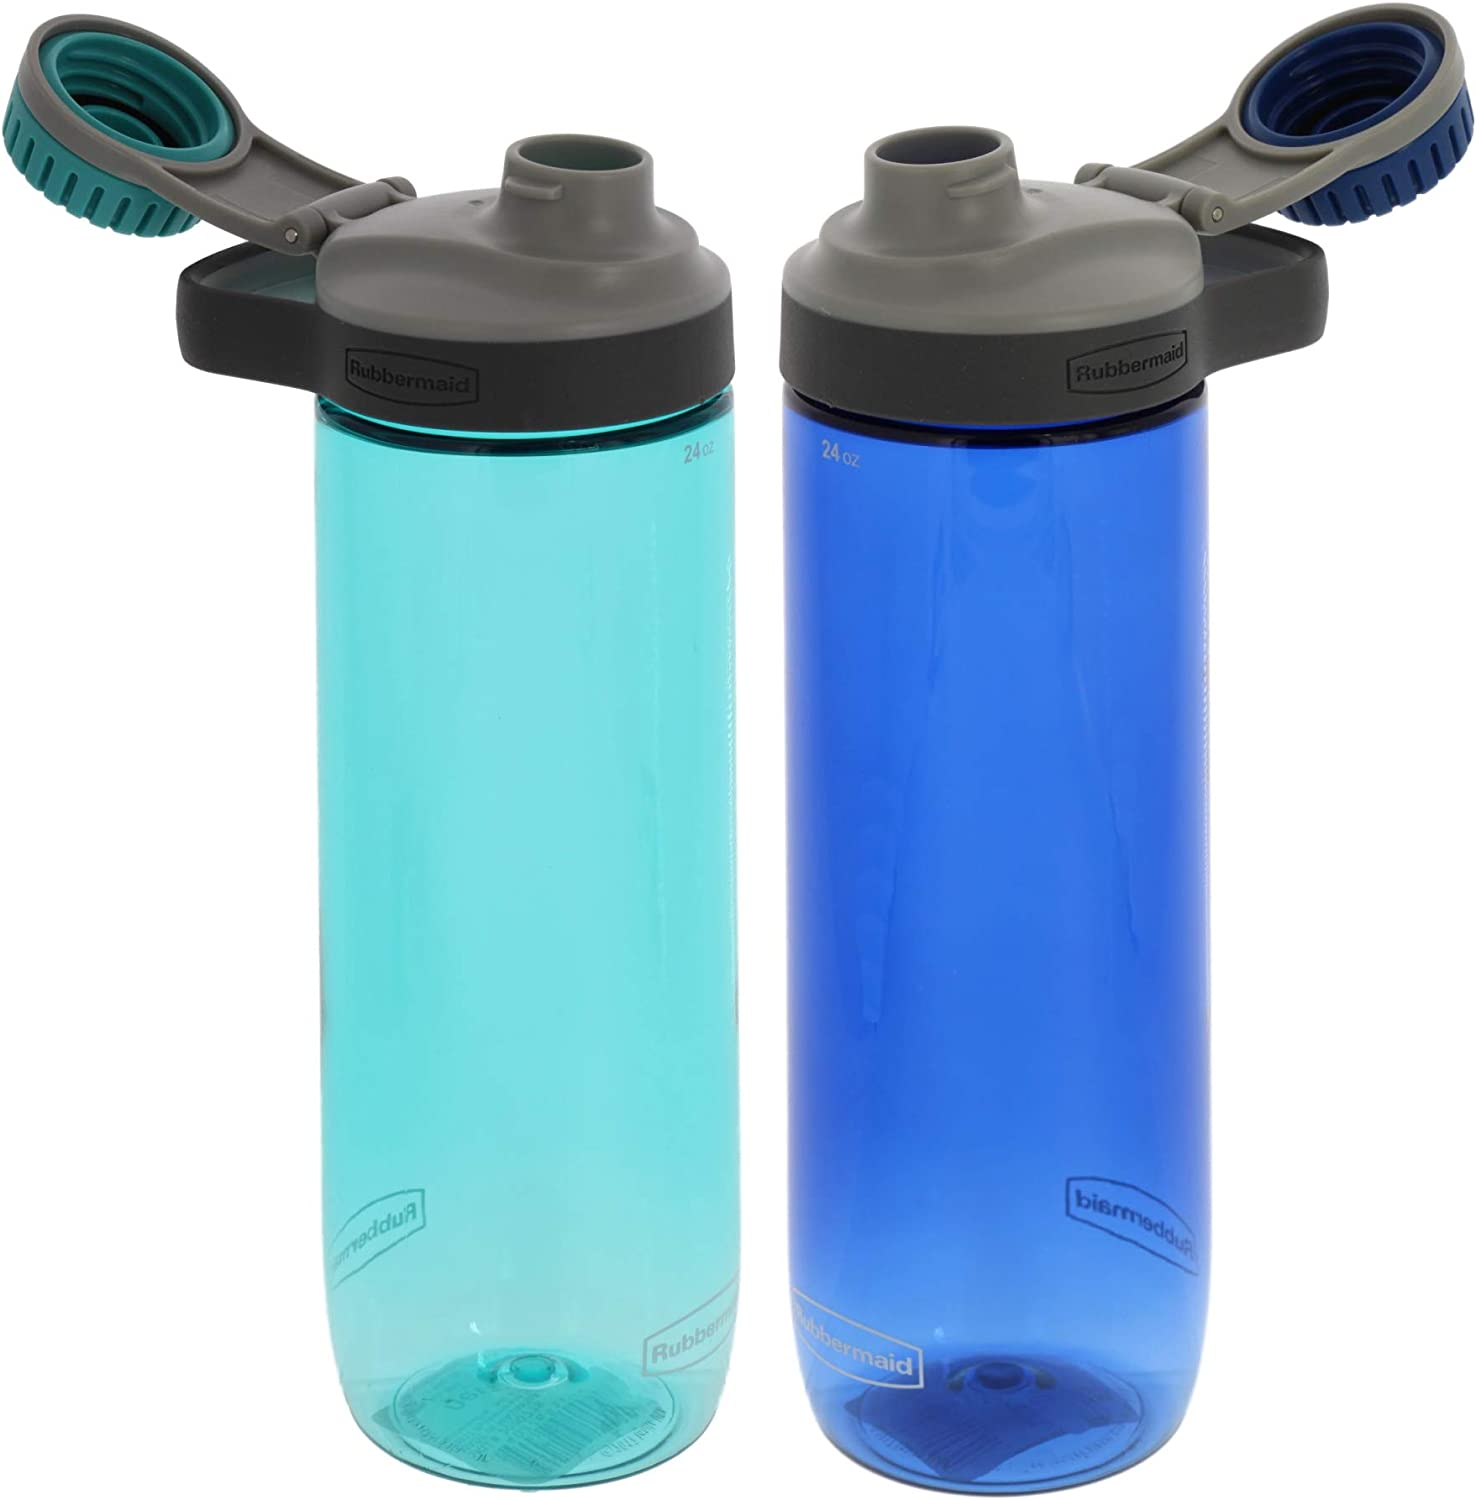 Rubbermaid Chug Water Bottle Set, 2 Pack - 24 Ounce, Nautical Blue and Aqua - The Perfect Rubbermaid Water Bottle - Ideal for the Gym, Office, Travel, School